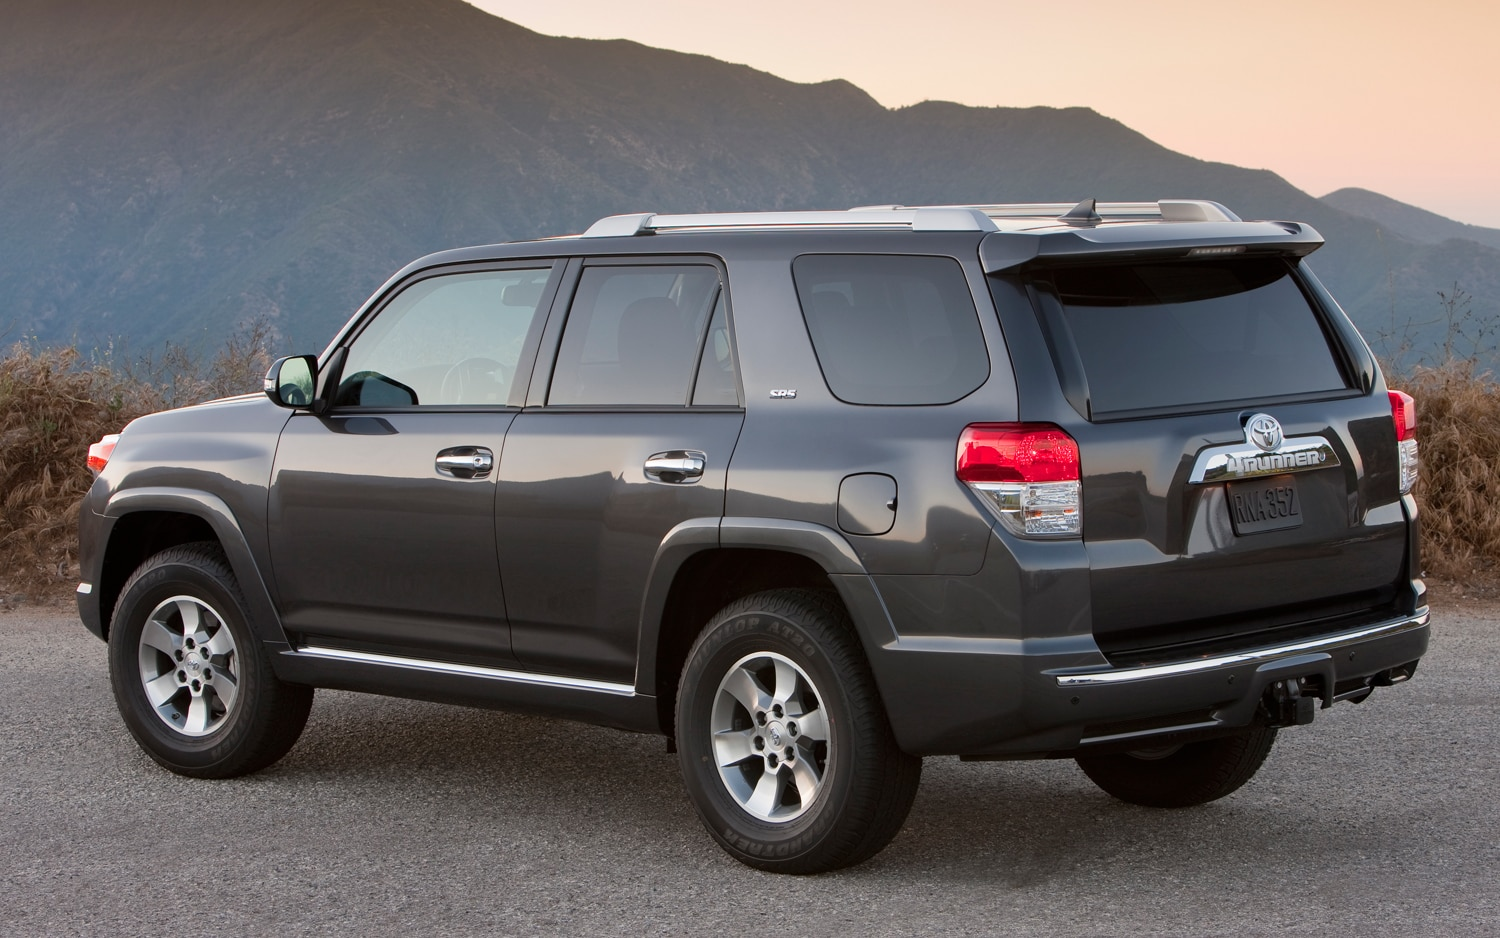 2013 Toyota 4Runner Rear